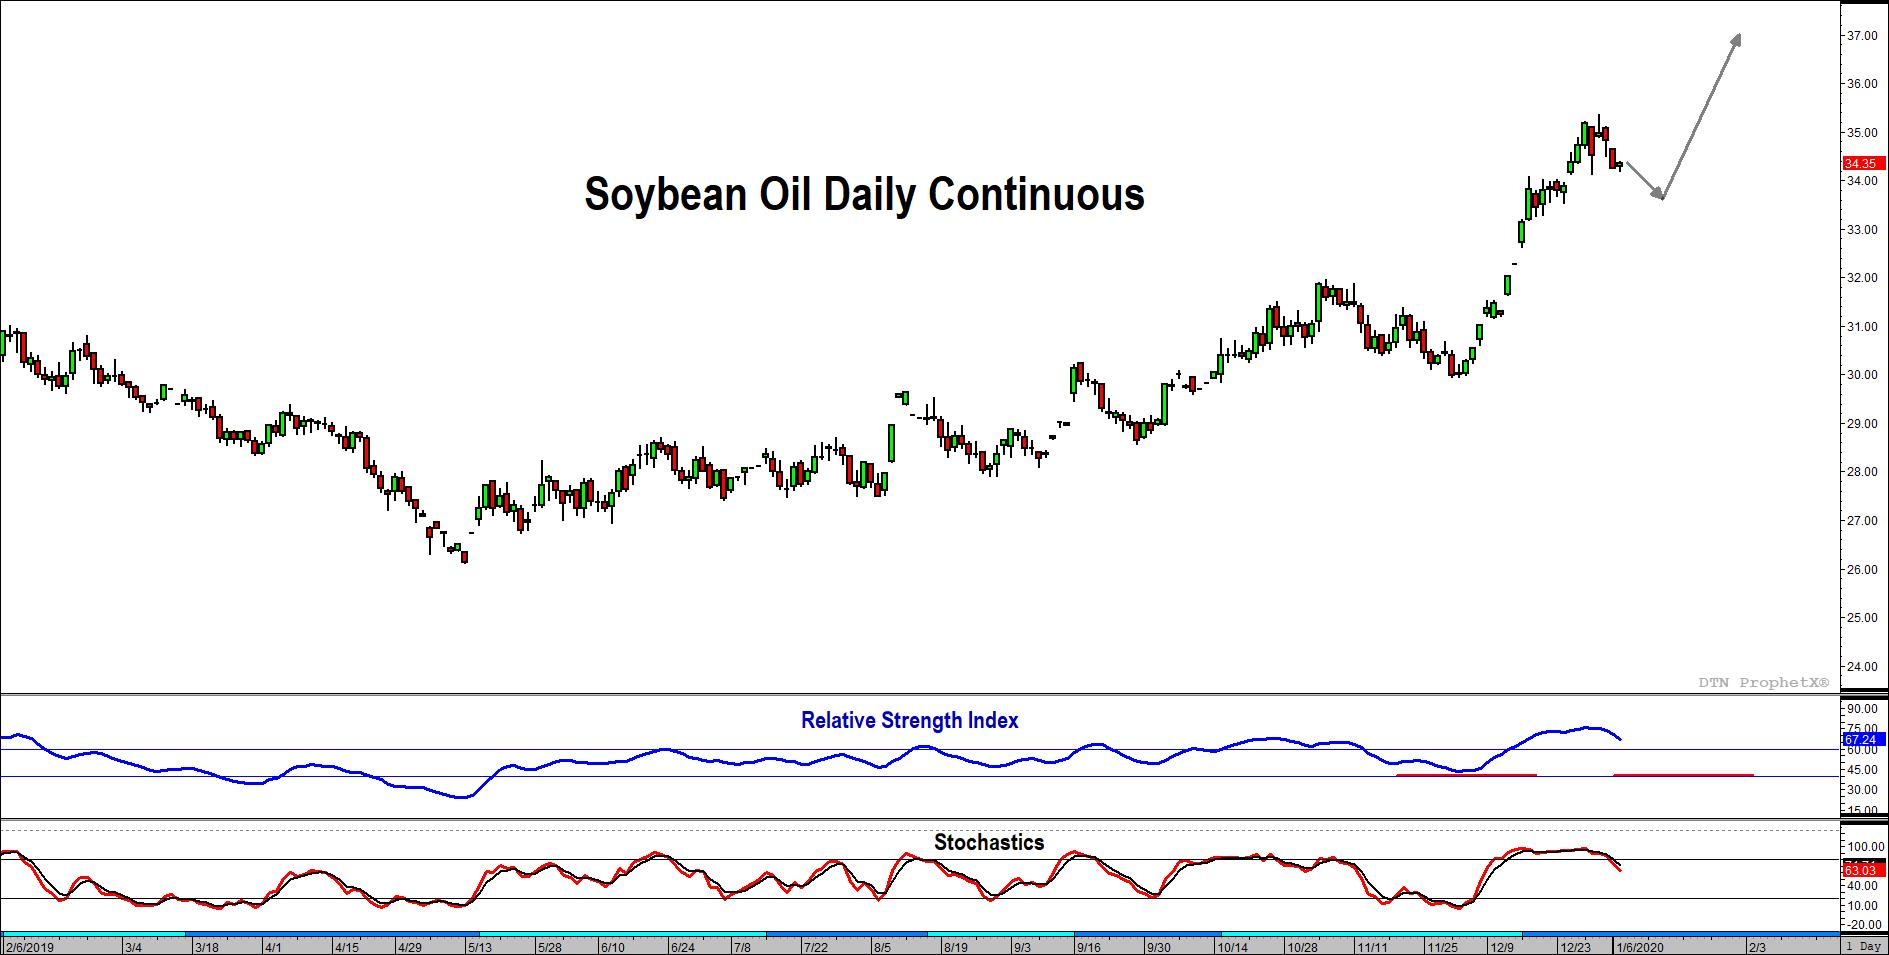 RSI-Stochastic Soybean Oil Chart